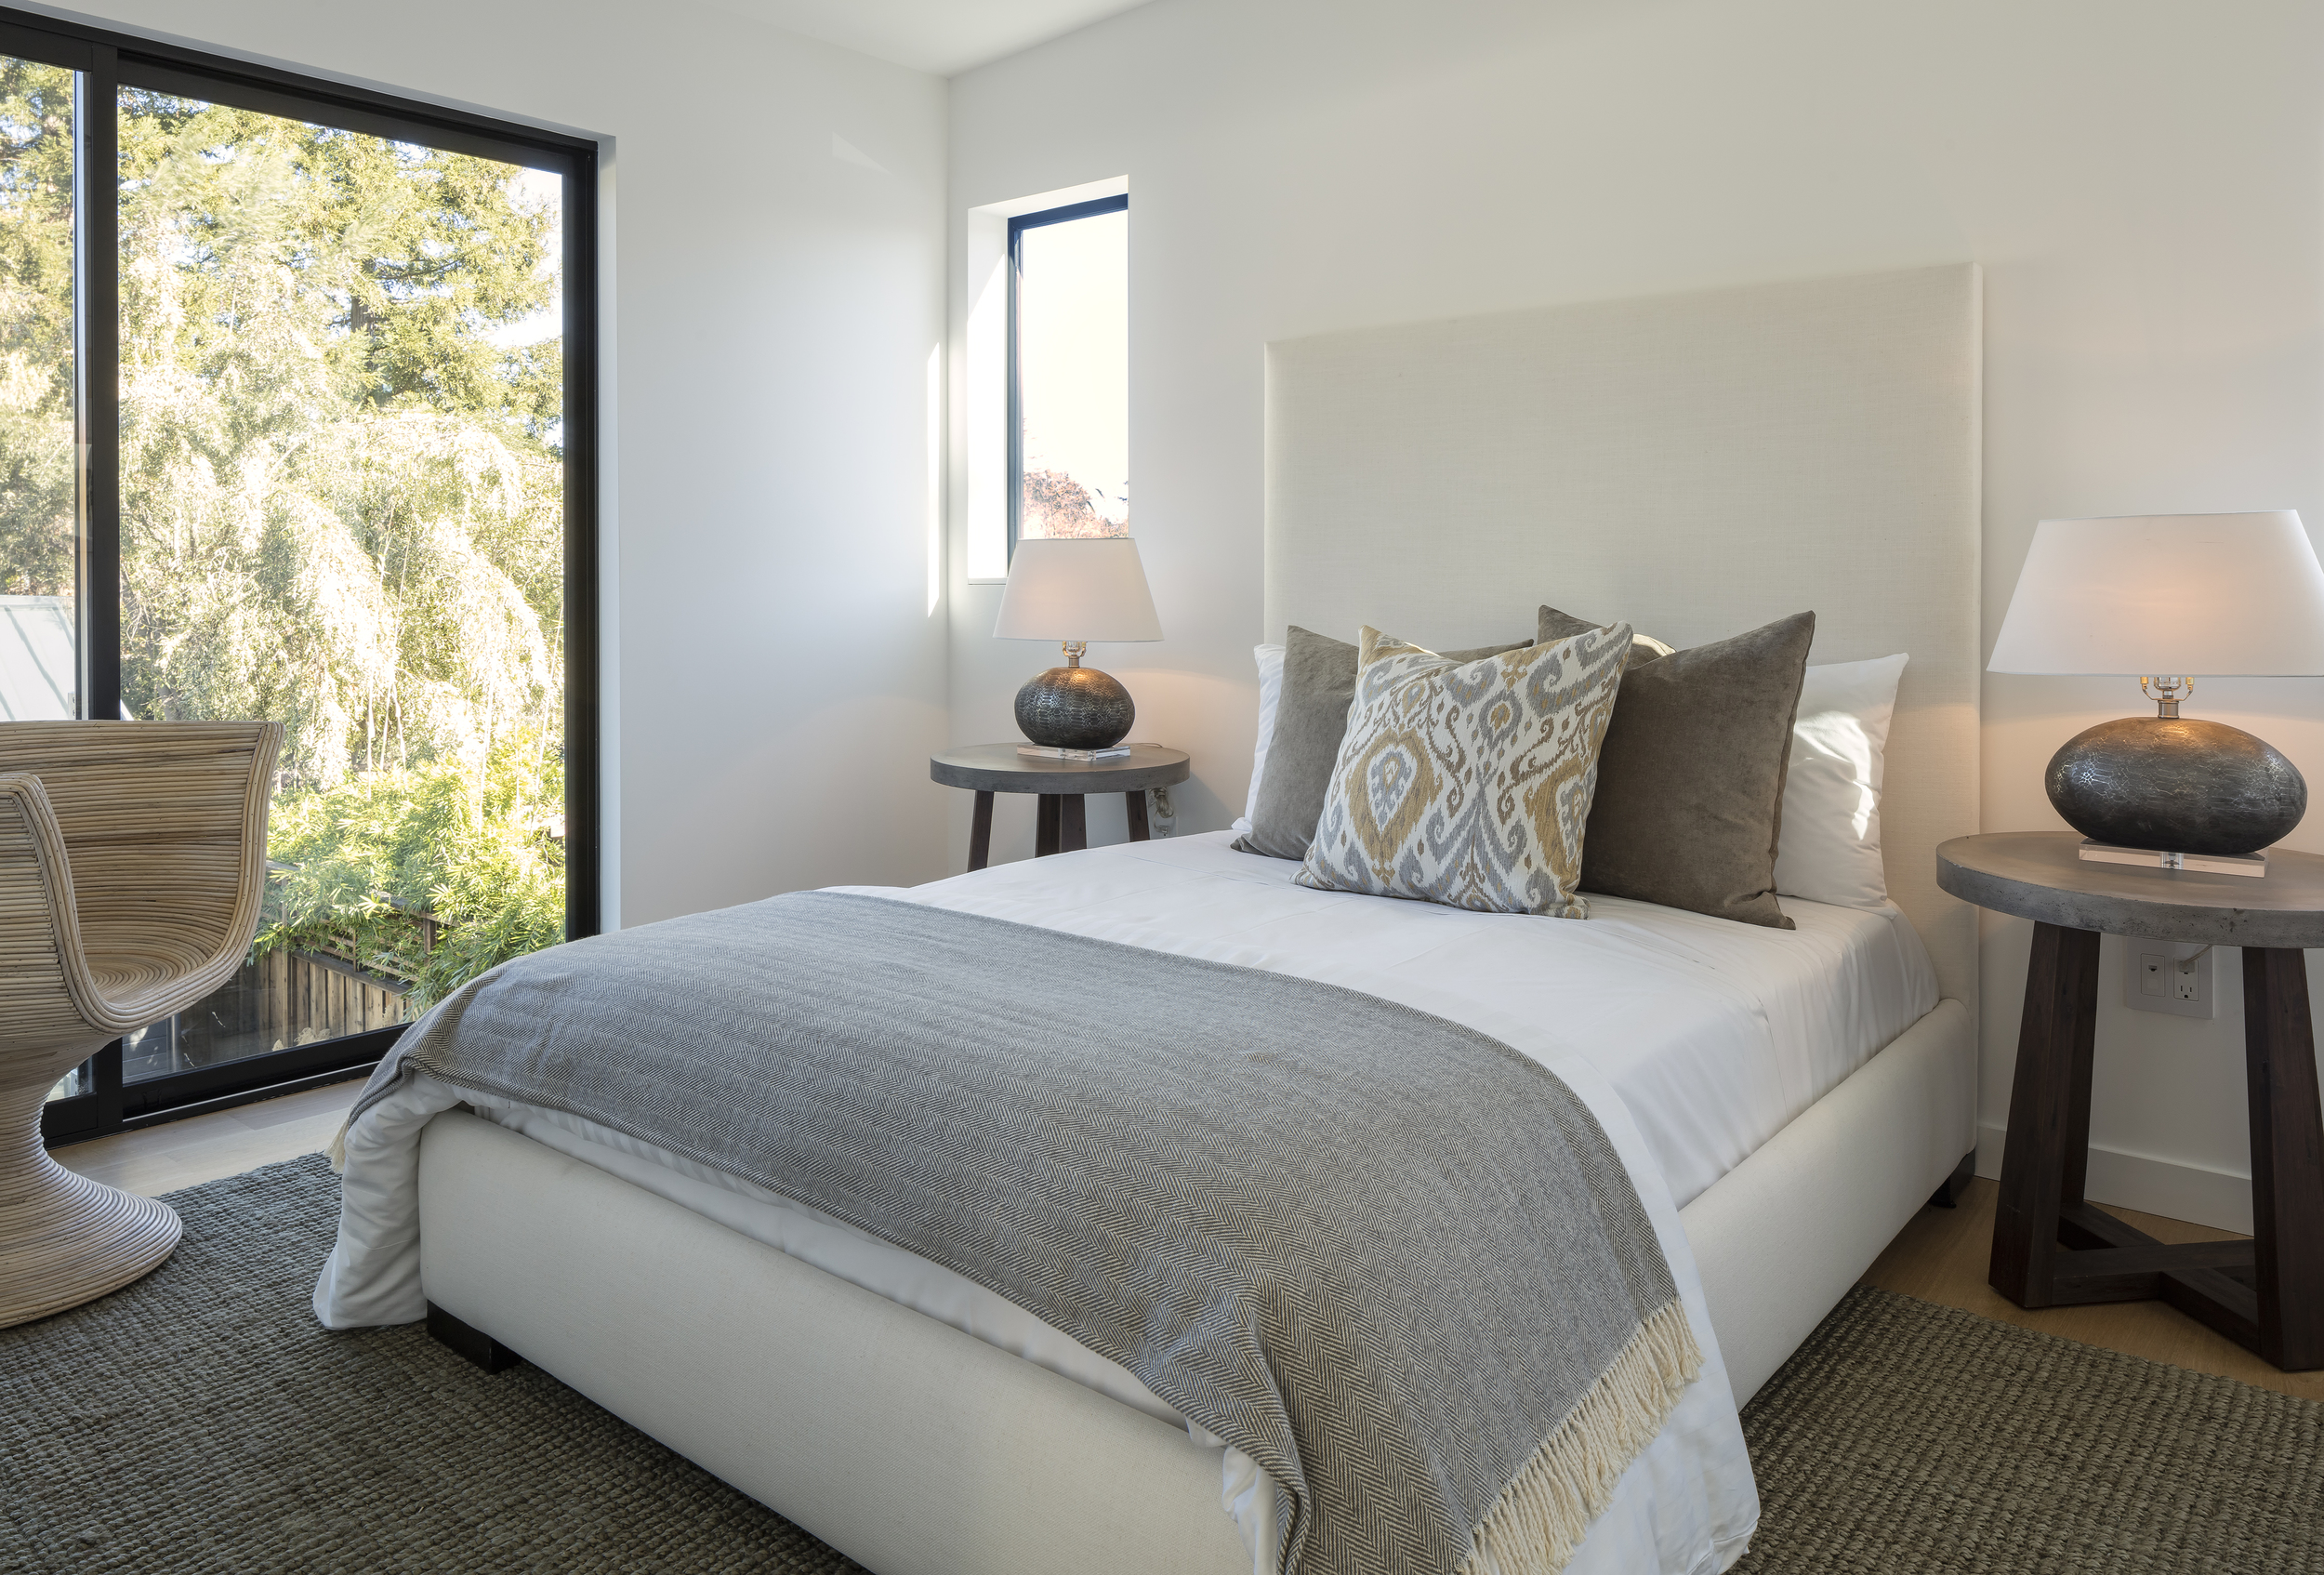 modern_home_interior_bedroom_napa.jpg